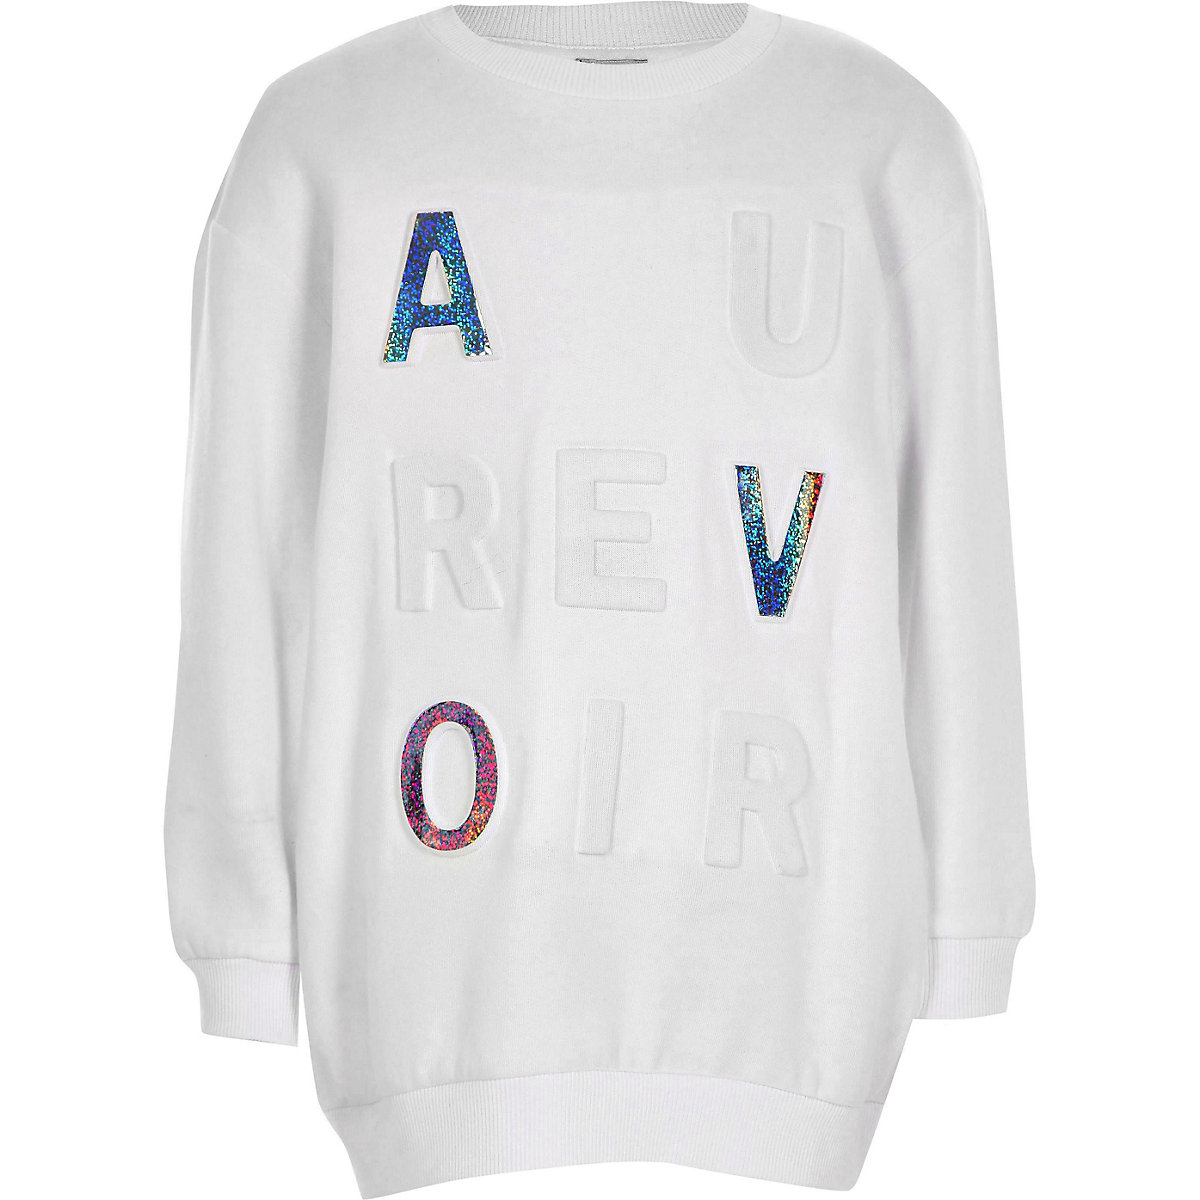 Girls white 'Au revoir' foil sweatshirt